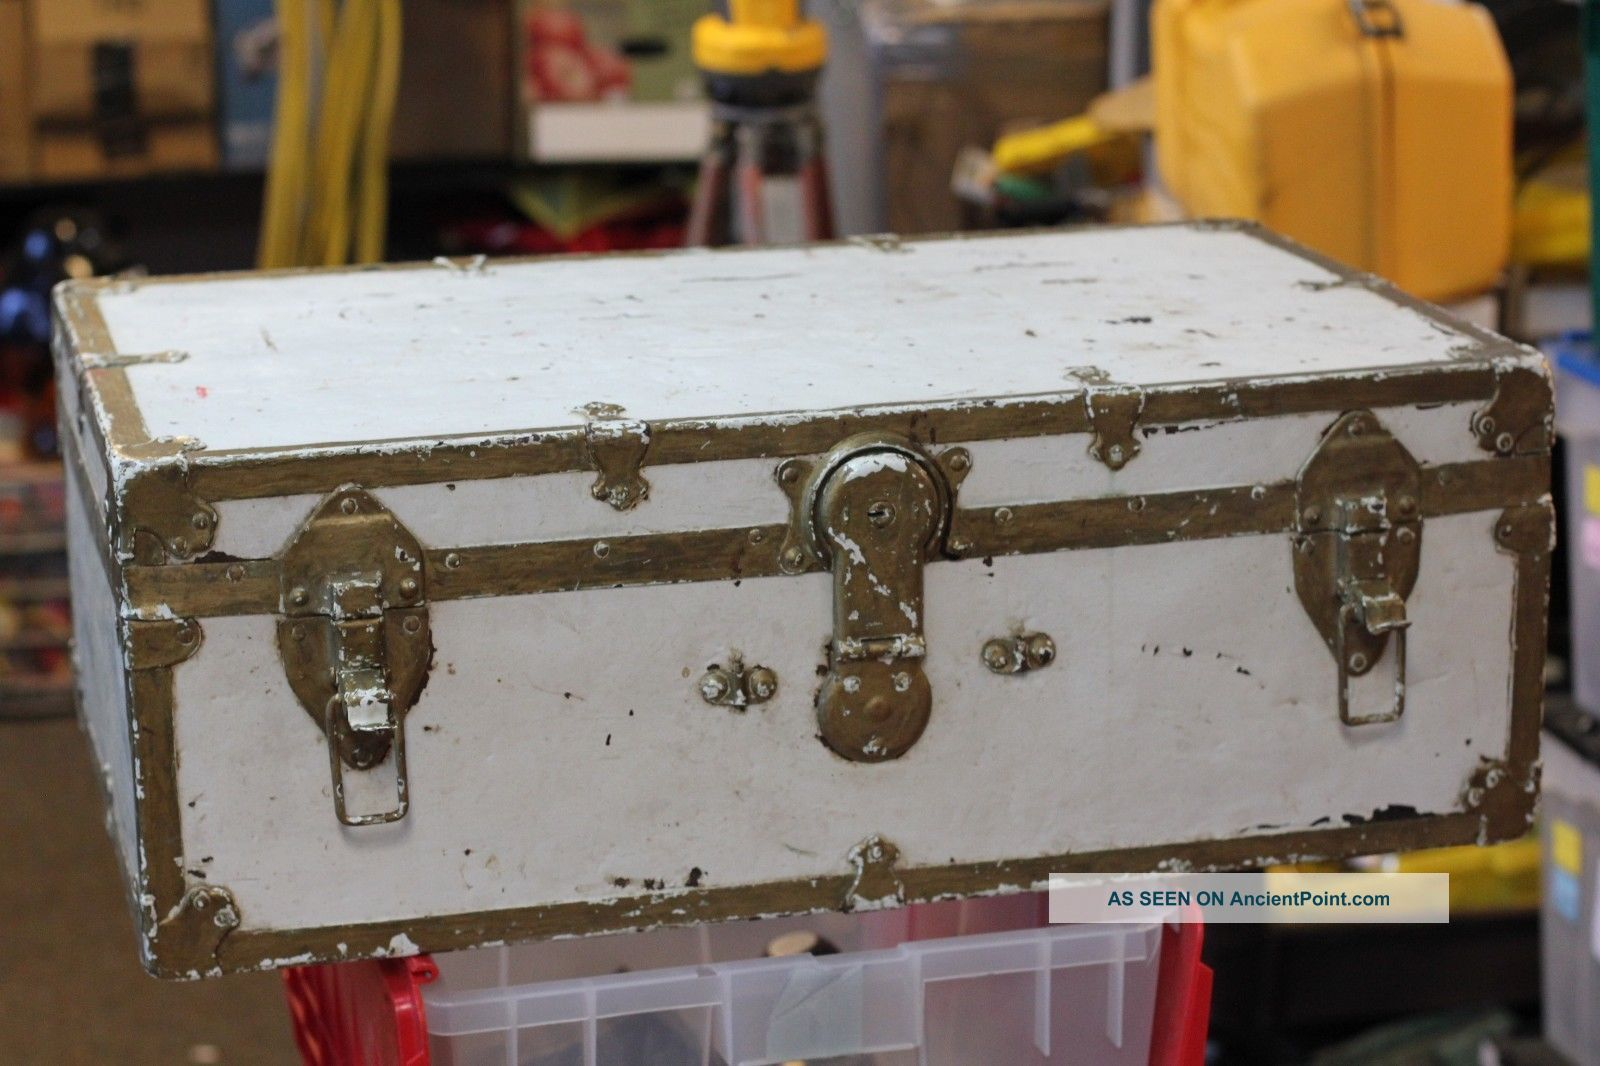 Vintage Steamer Trunk Train Luggage Chest Old Coffee Table Antique Storage 1900-1950 photo